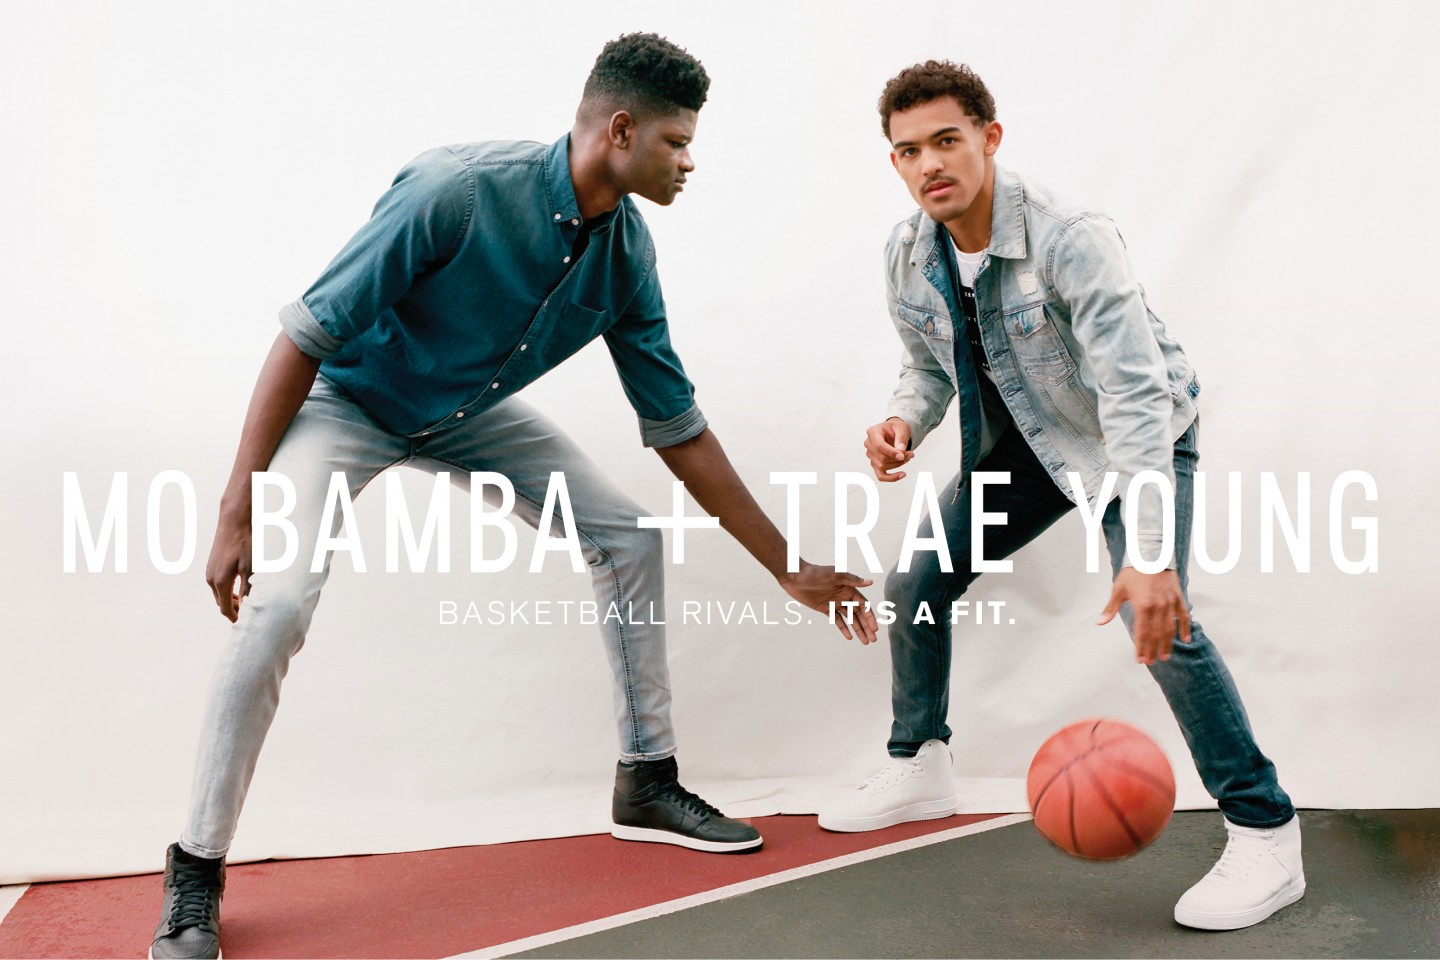 544031f59 How Trae Young and Mo Bamba Are Fueling Basketball s Hottest Rivalry ...